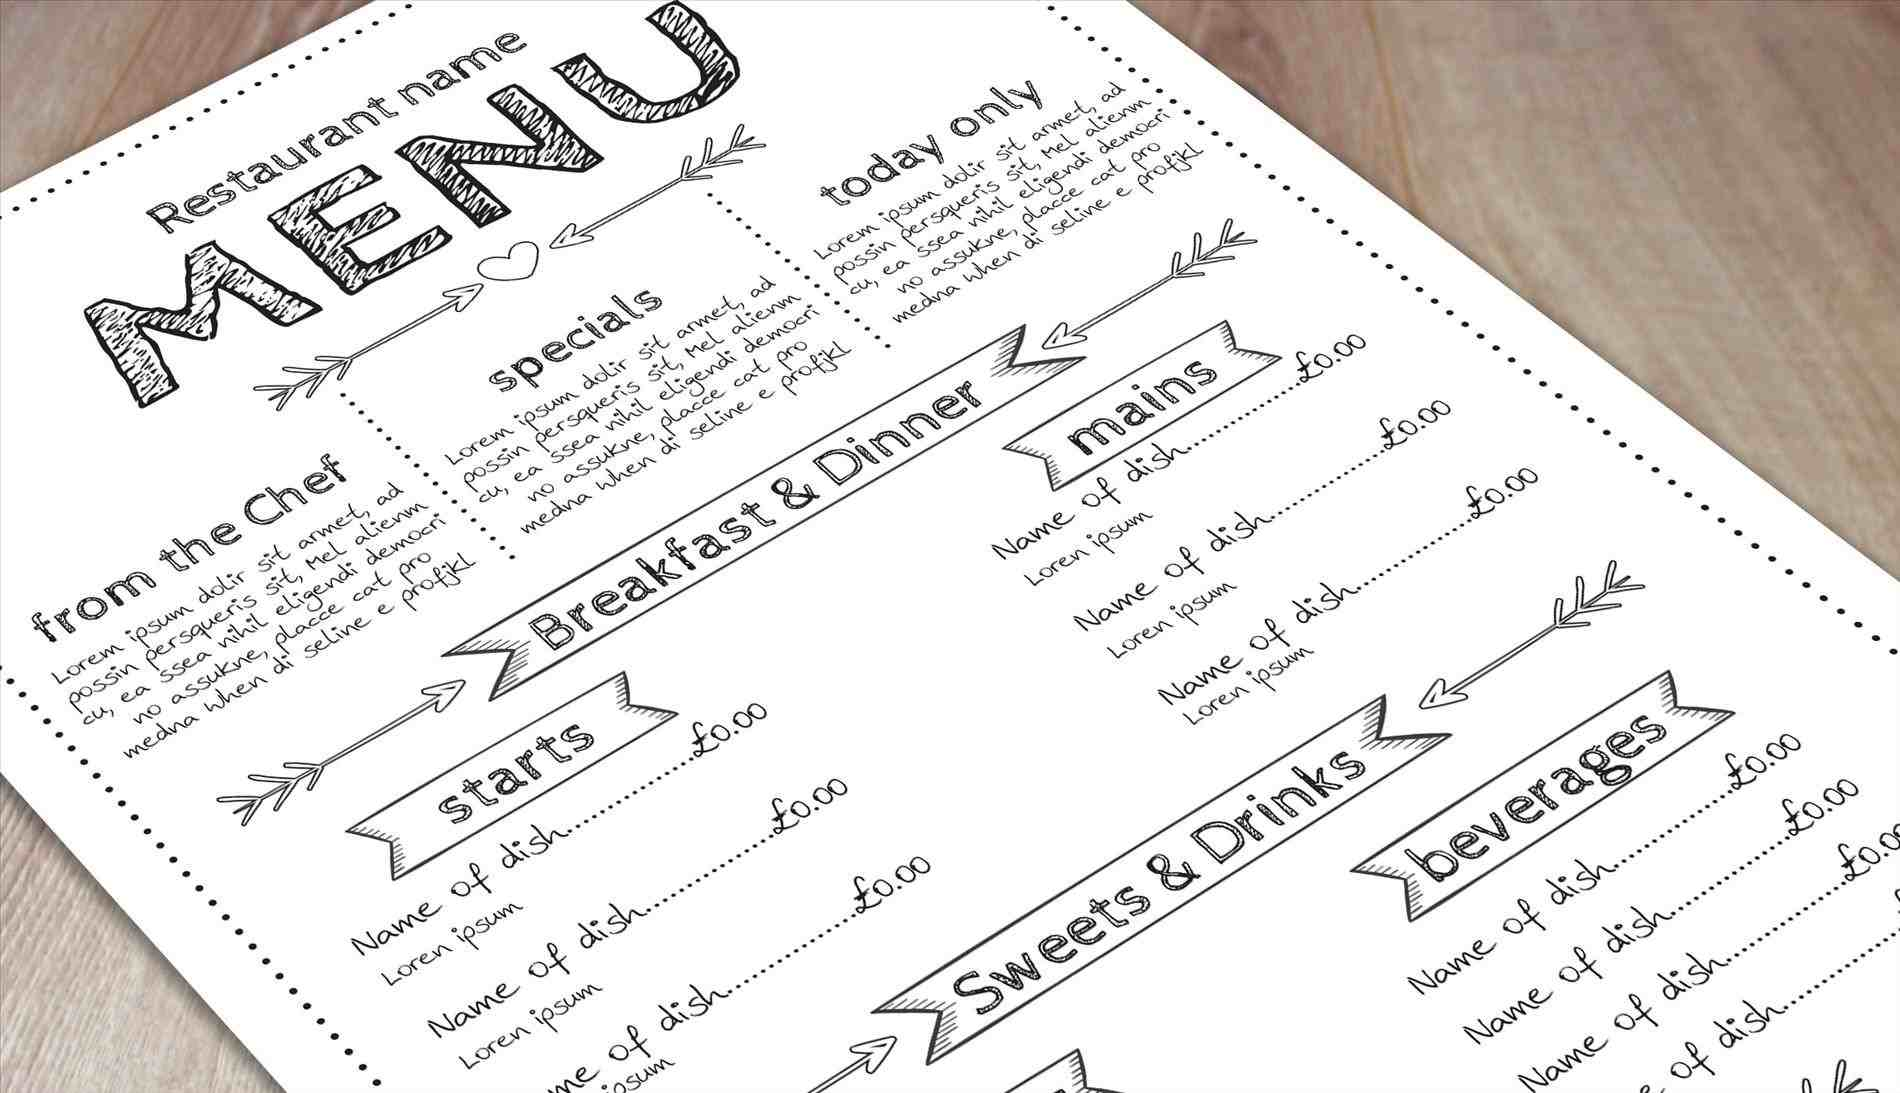 rhblogprintprintcouk get Free Menu Template the look free menu templates print and marketing blog rhblogprintprintcouk vintage food template downloadrhcgispreadcom vintage